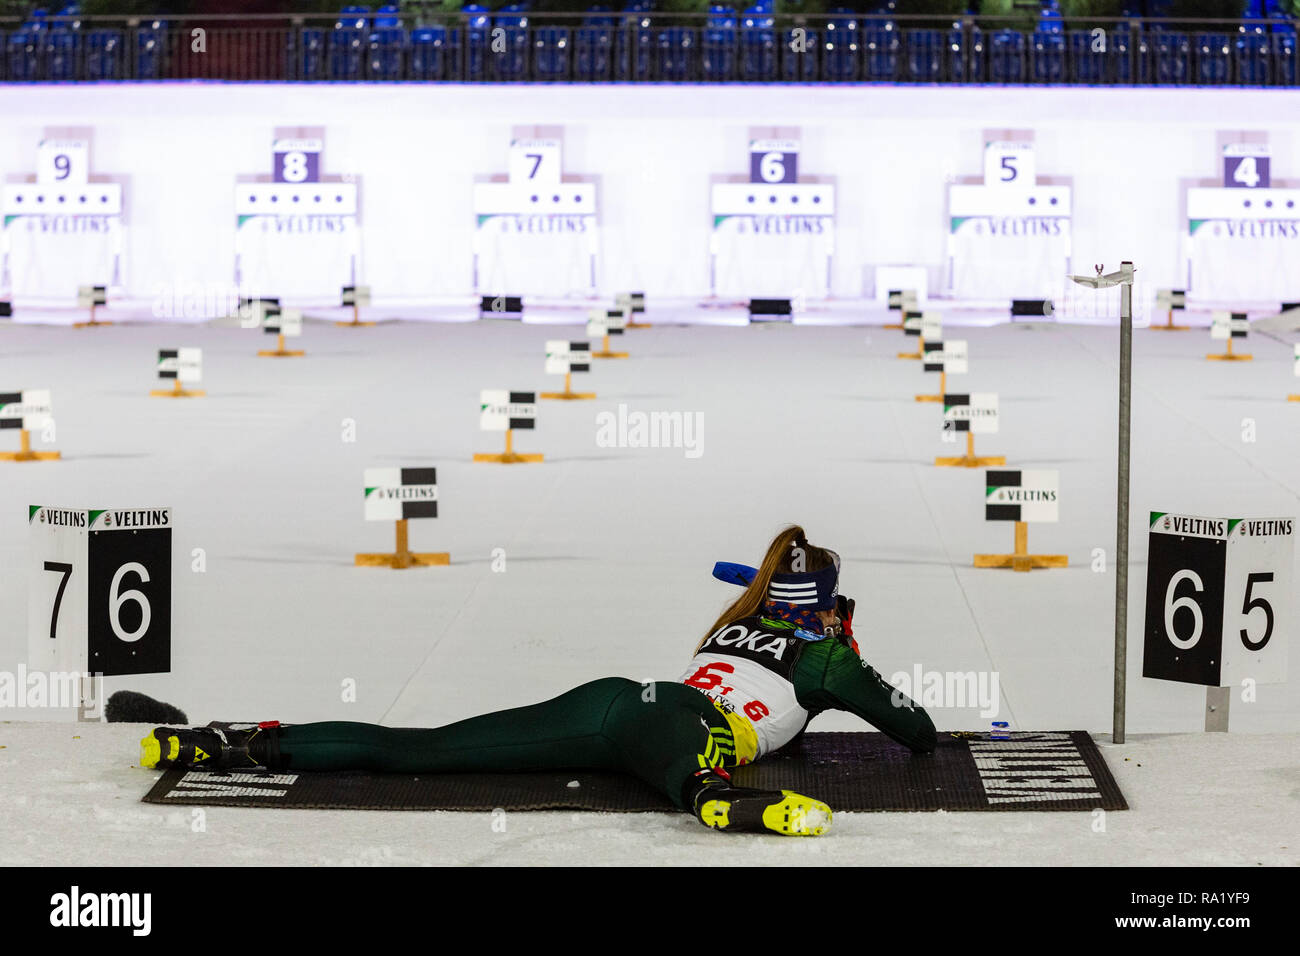 Vanessa Voigt, WSV Rotterode. The German Team Challenge takes place during the JOKA Biathlon WTC auf Schalke featuring young German biathlethes. - Stock Image